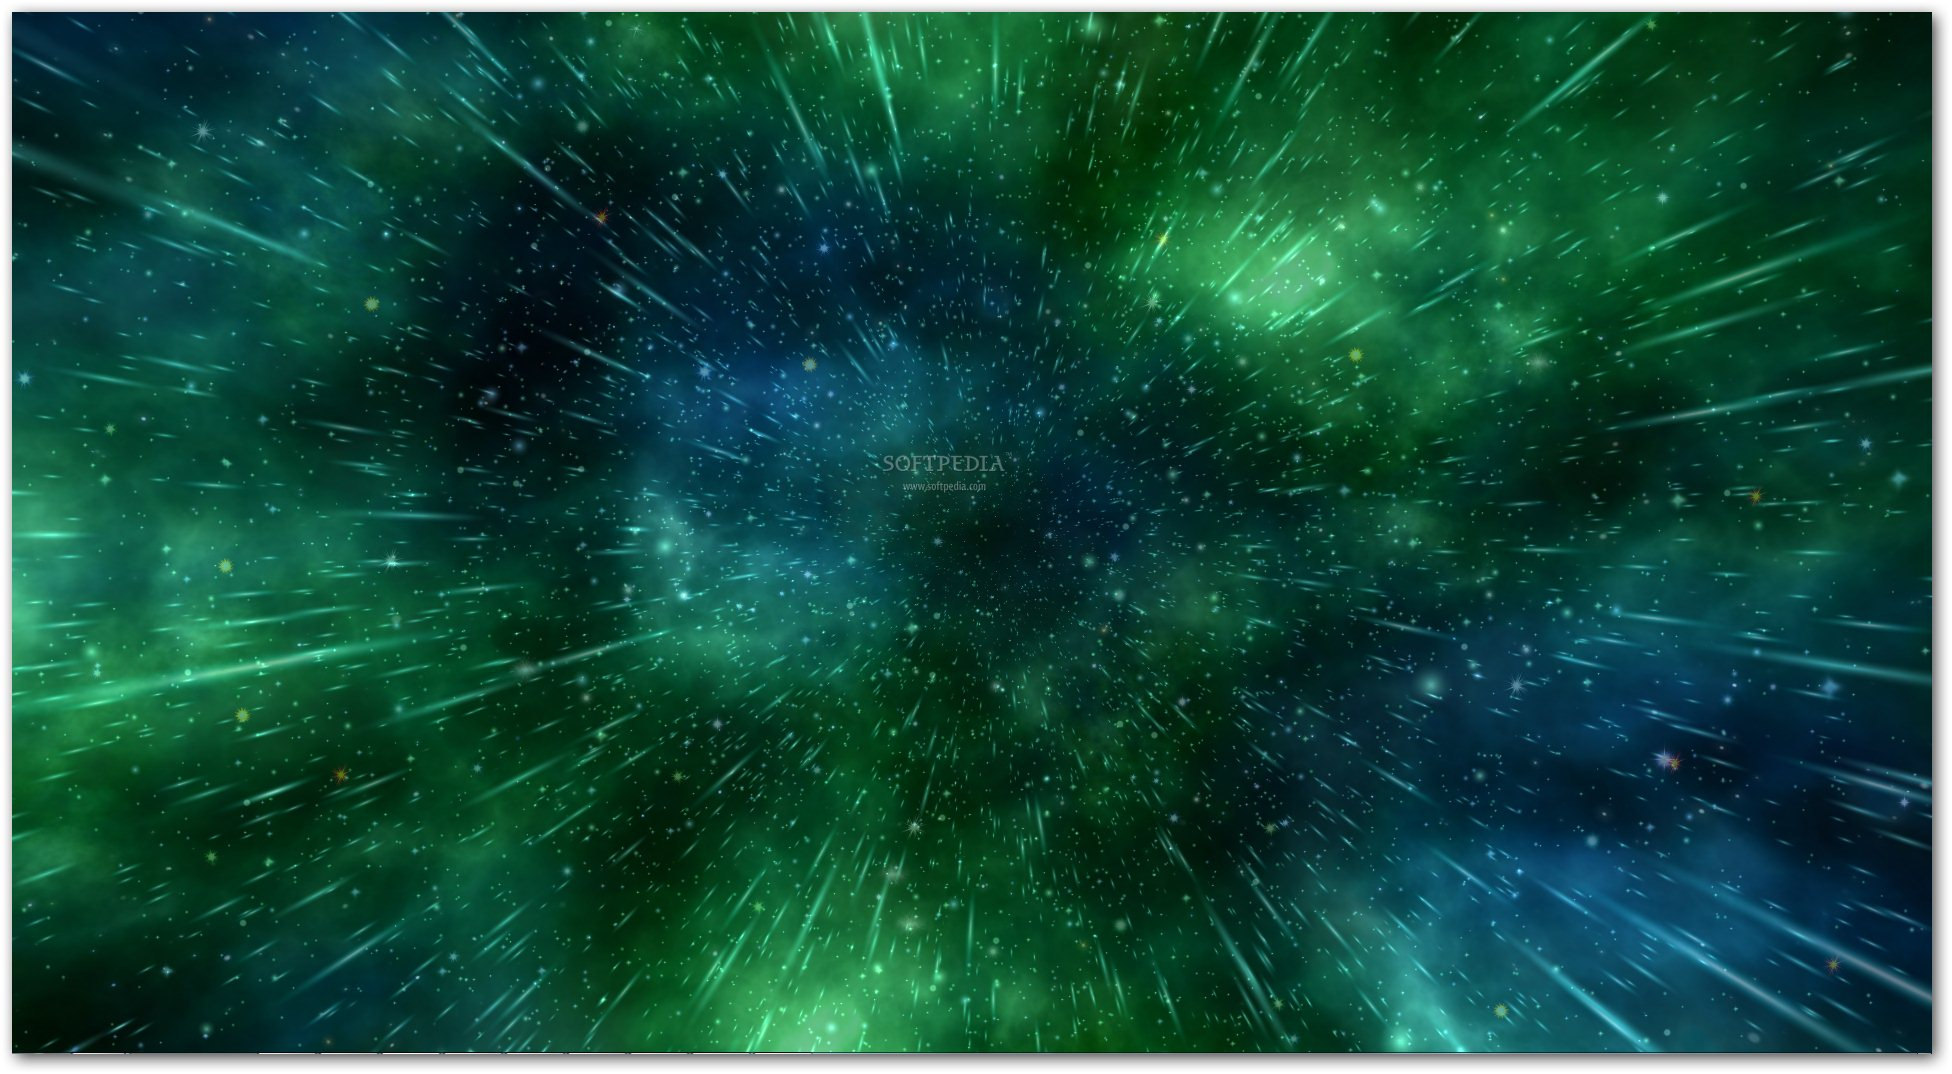 Beautiful Space 3D Animated Wallpaper Screensaver   This screensaver 1952x1074